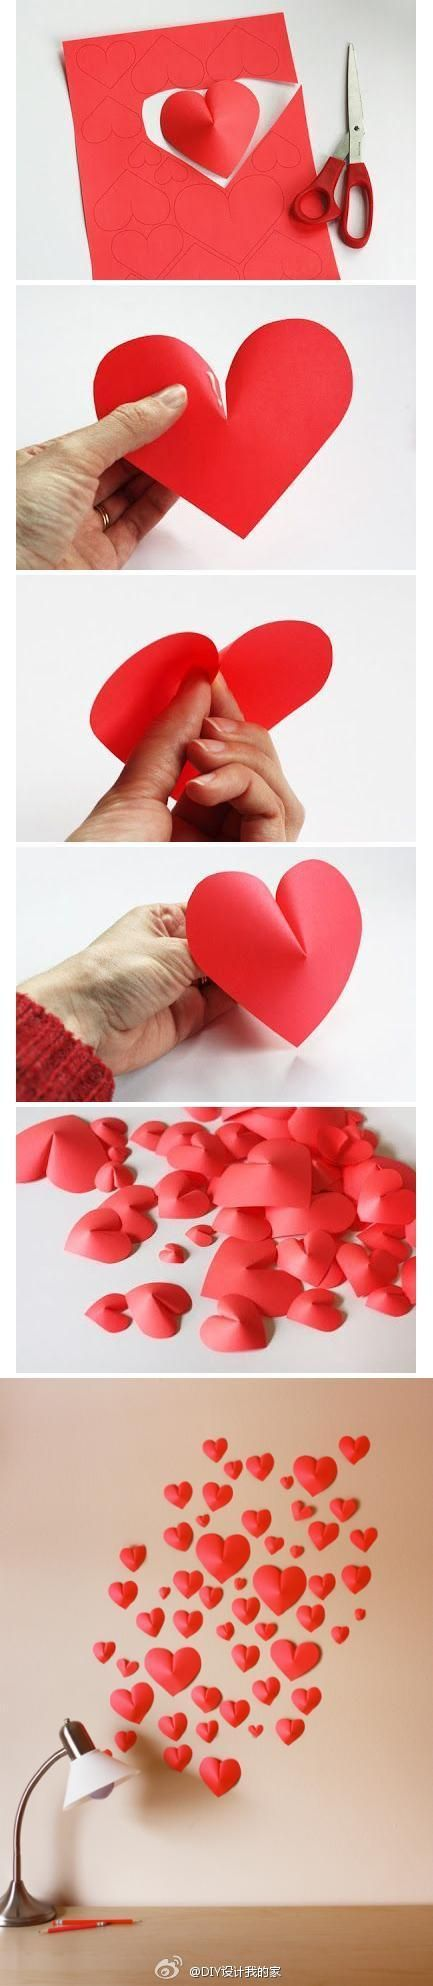 DIY Make a 3D Paper Heart for cute decorations- Usse them as confetti or hang th